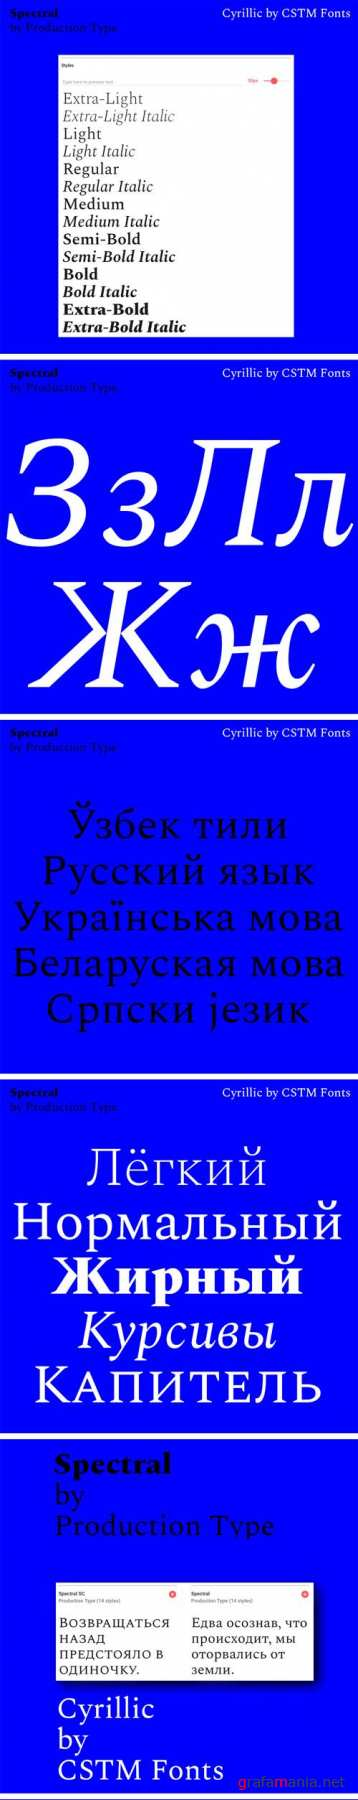 Spectral Font Family [with Cyrillic Support]